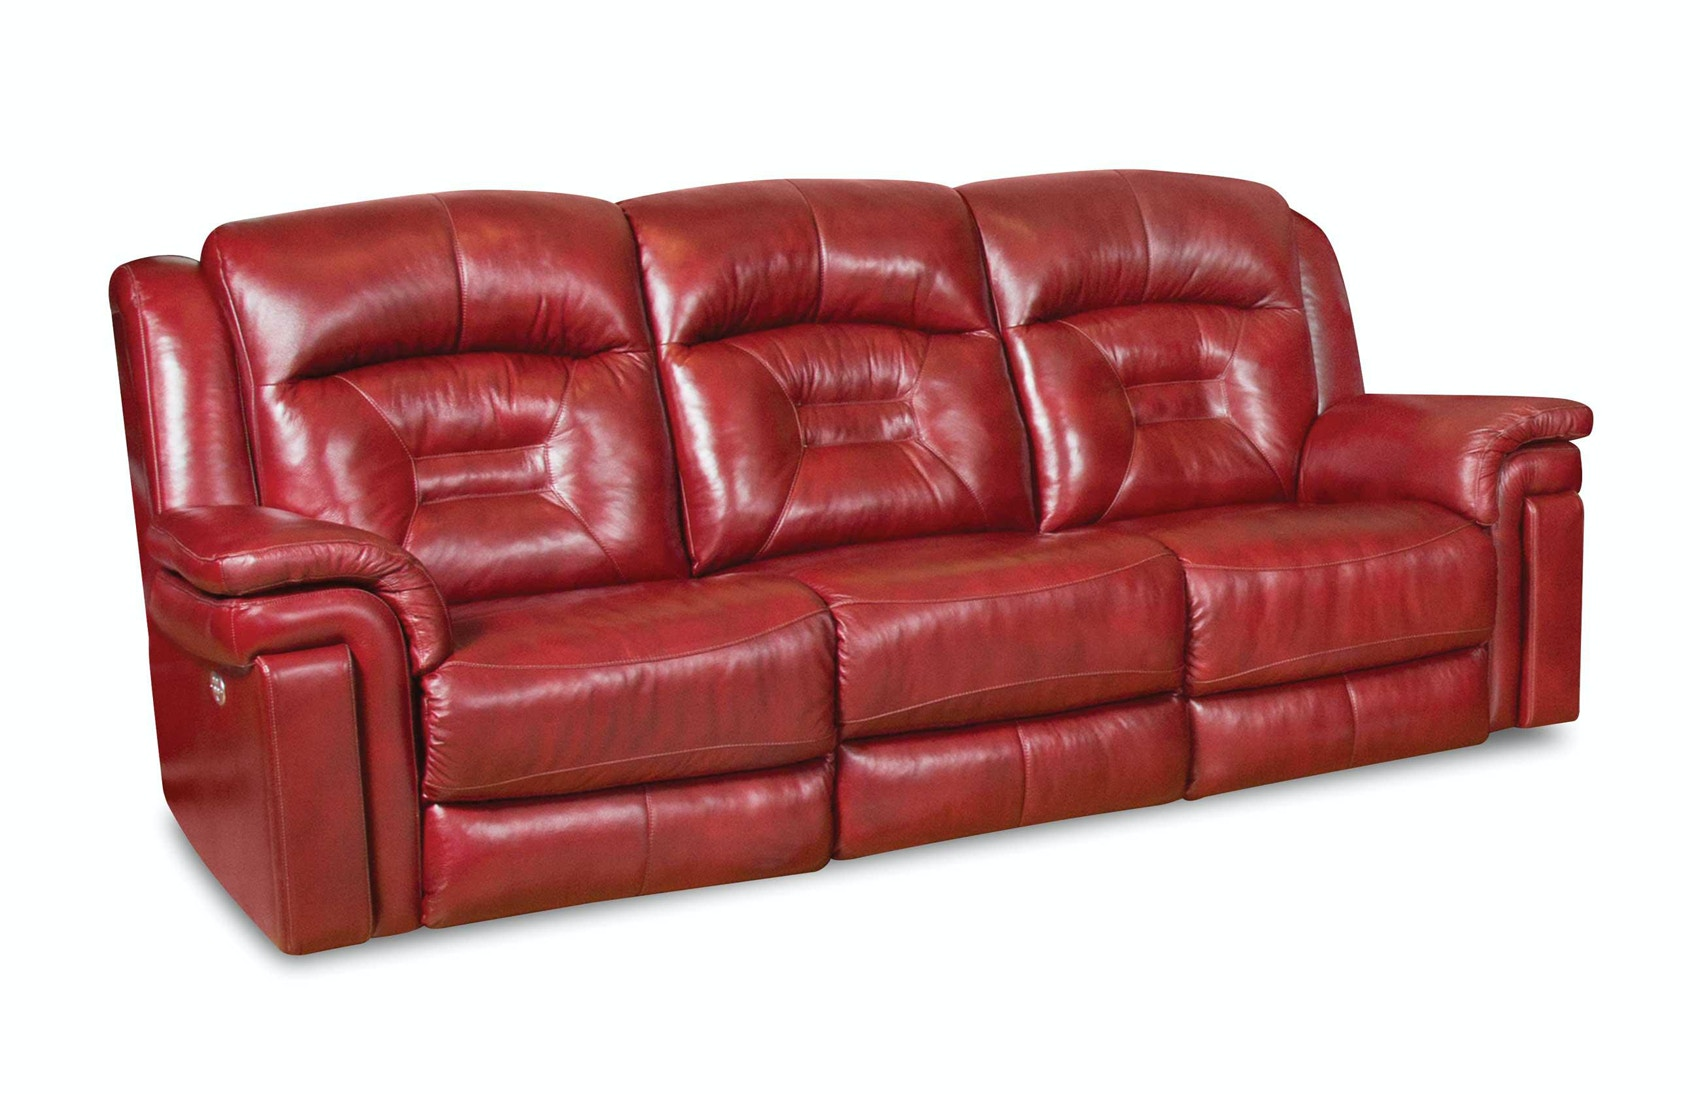 155104. Avatar Power Motion Sofa